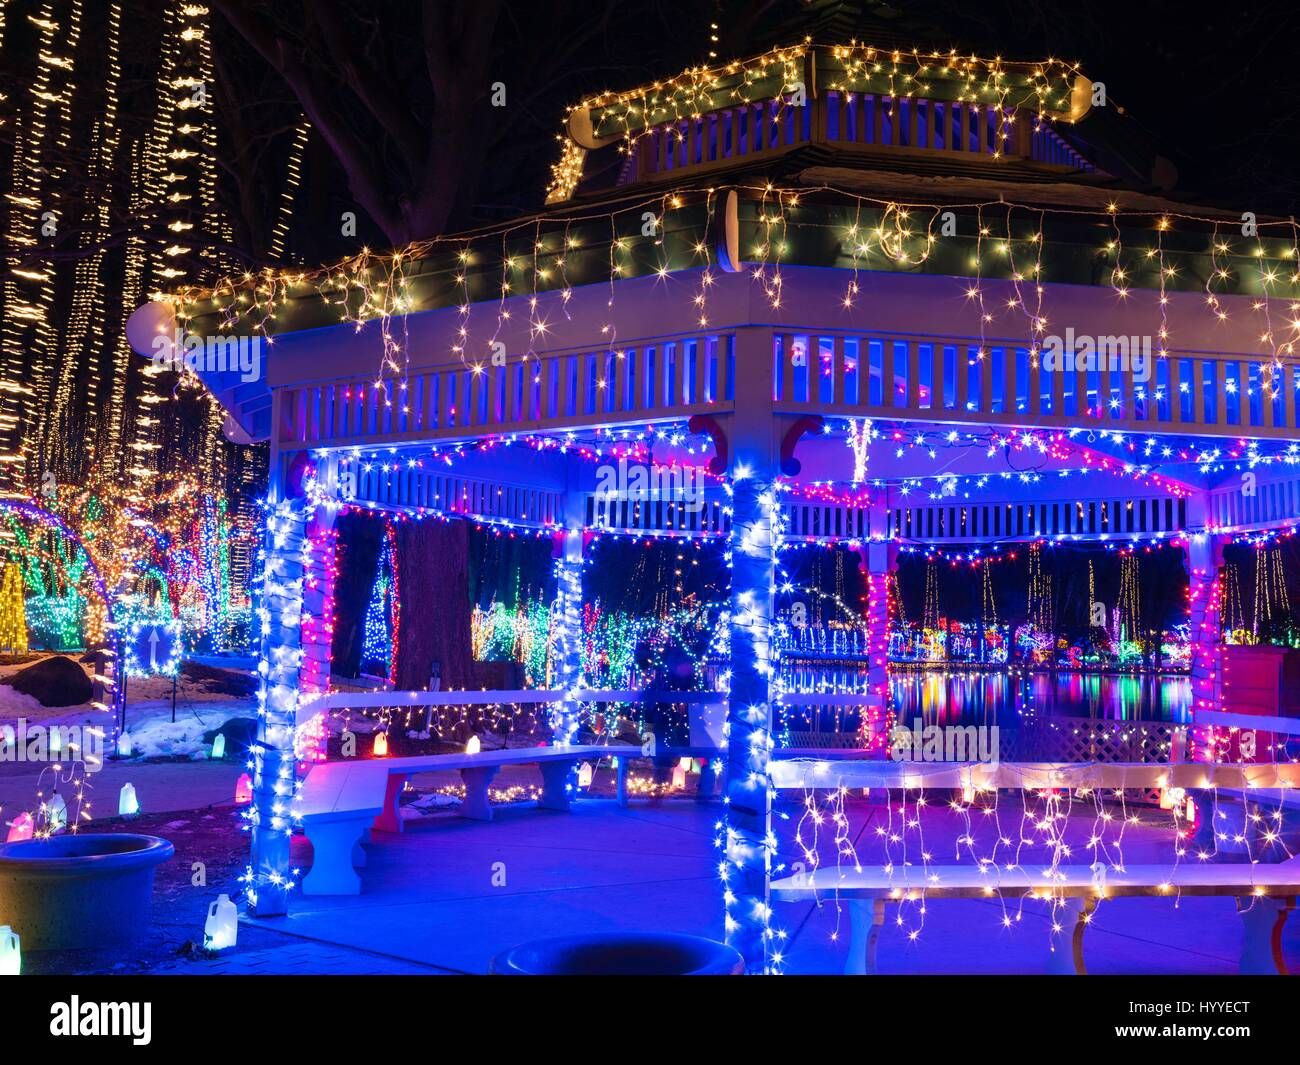 Holiday light show at janesville rotary gardens janesville wisconsin